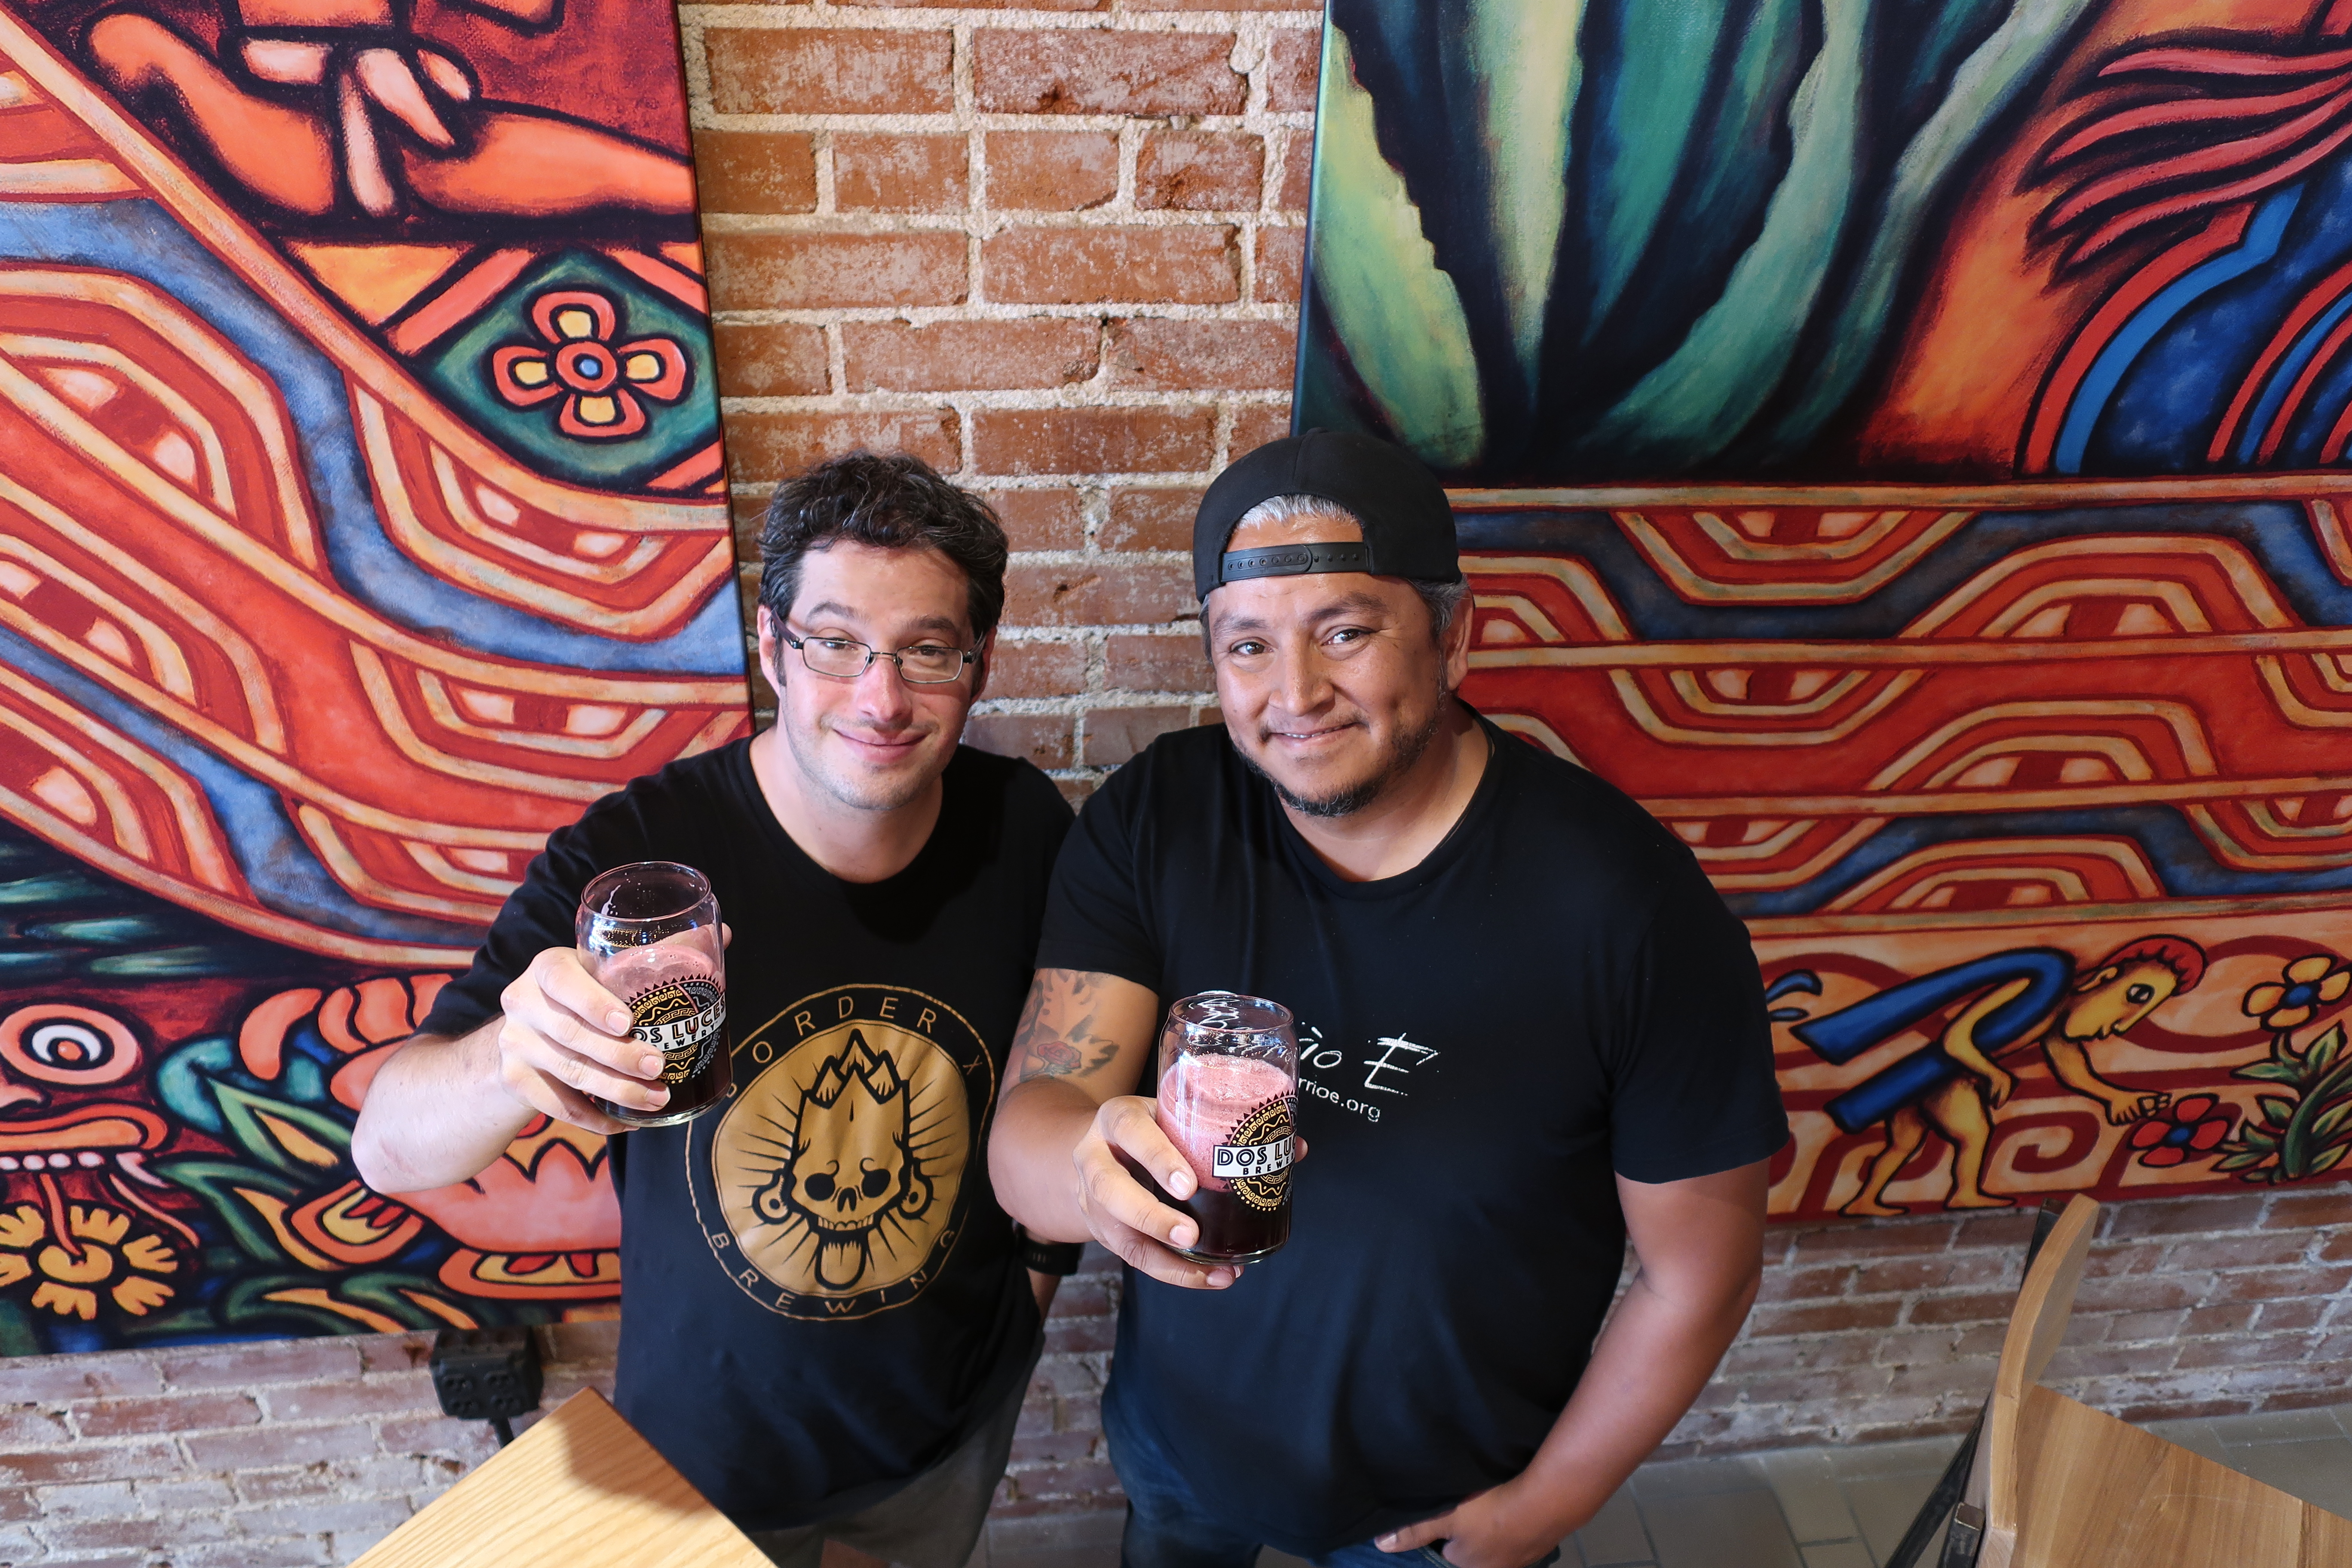 Judd Belstock, owner of Dos Luces Brewery and Jose Beteta, owner of Raíces Brewing Co. Beteta is also the founder of Suave Fest, a Latin beer festival happening in Denver, Sept. 14, 2019.